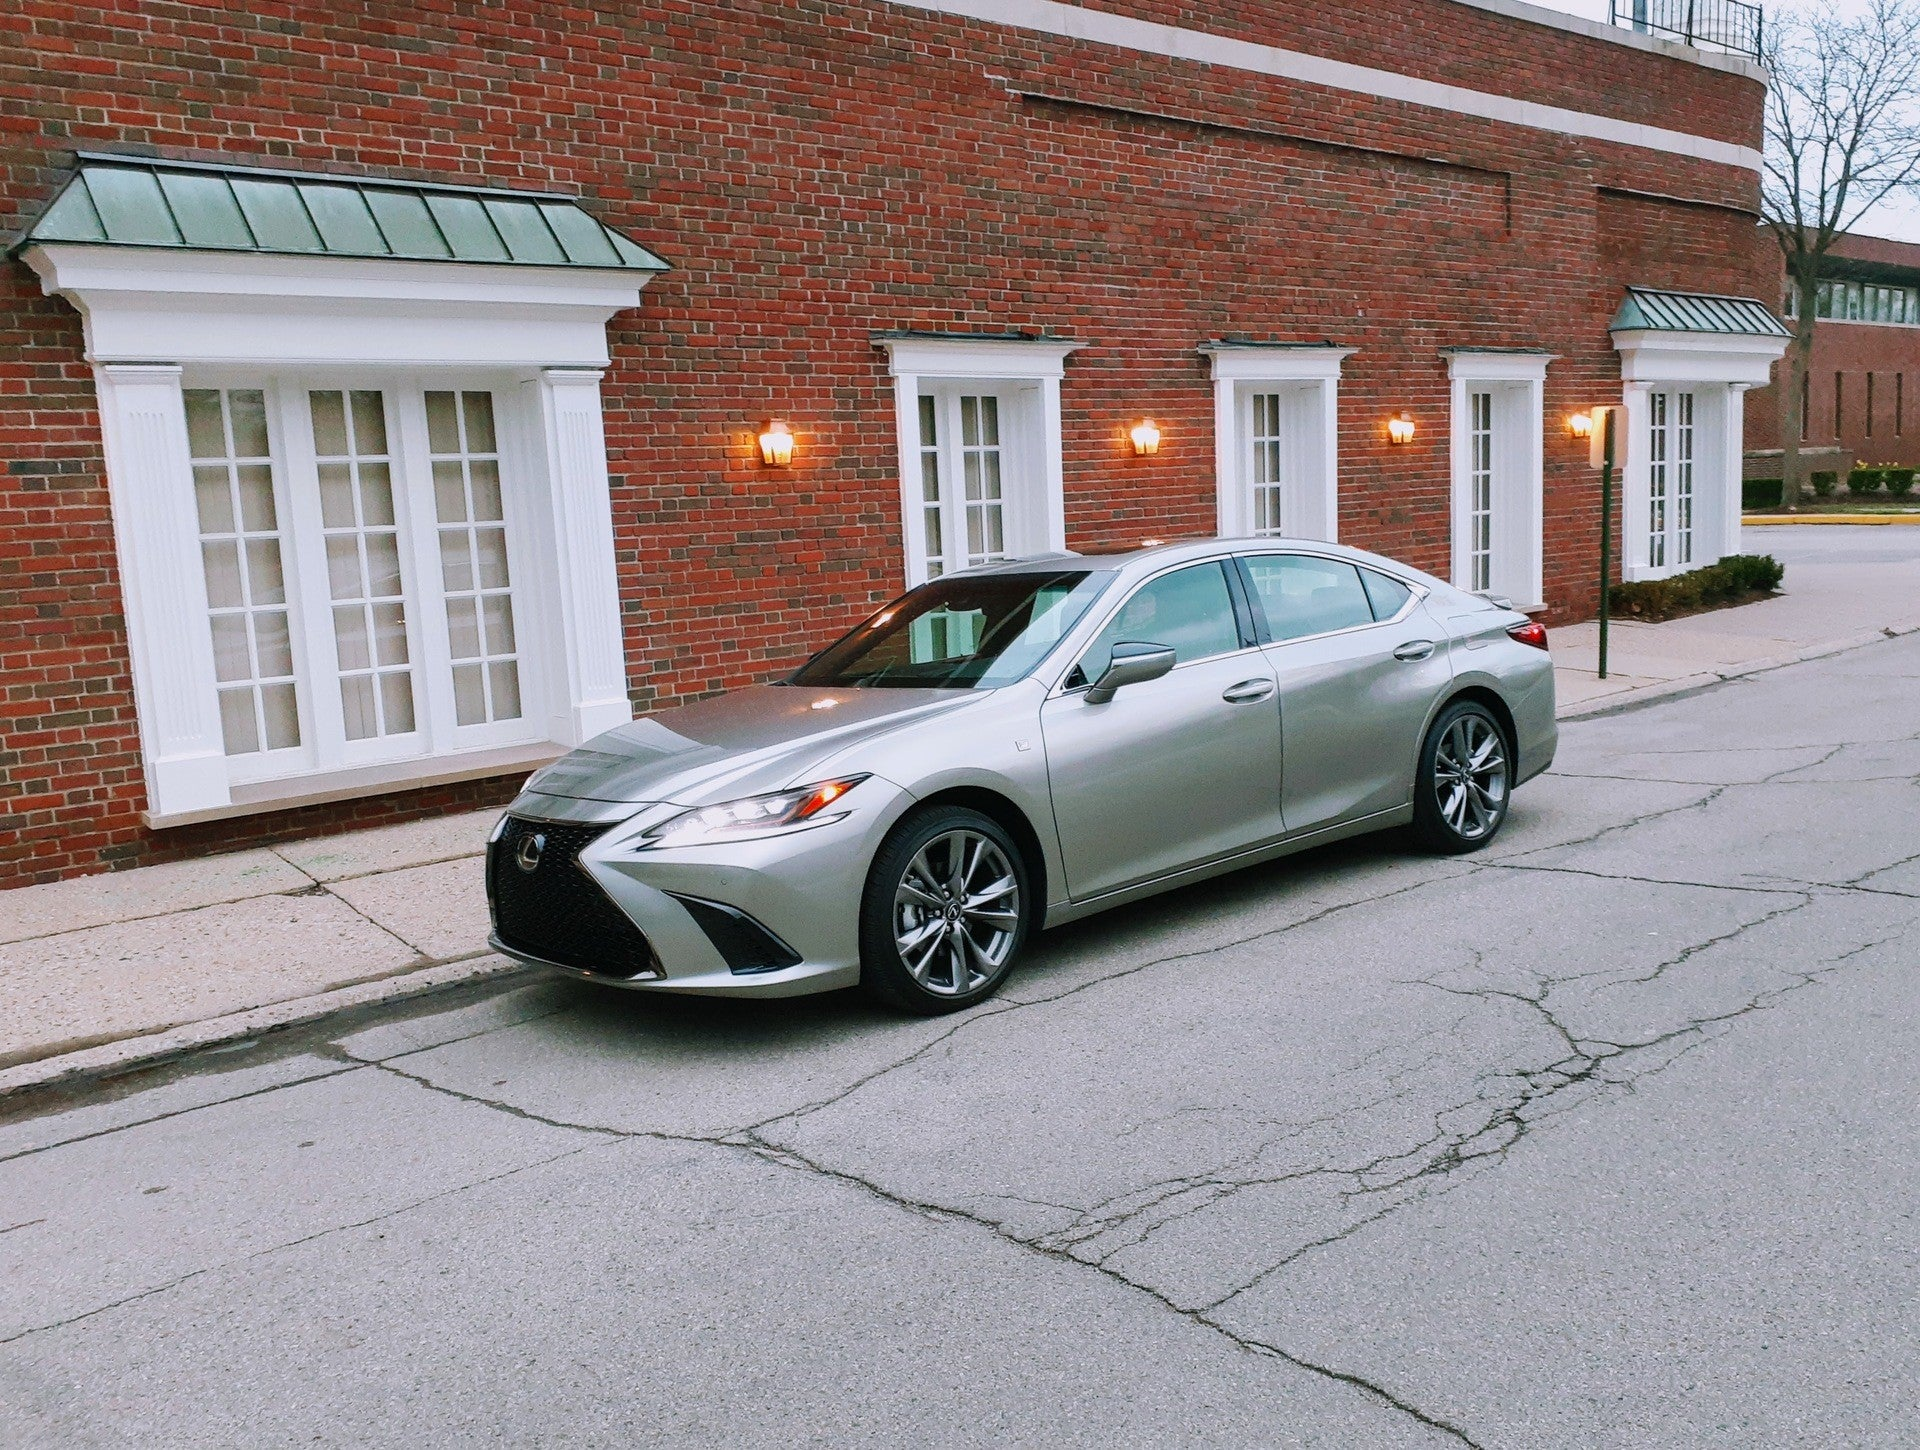 2020 Lexus Es 350 F Sport Review Fun To Drive During The Week Twice On Sundays